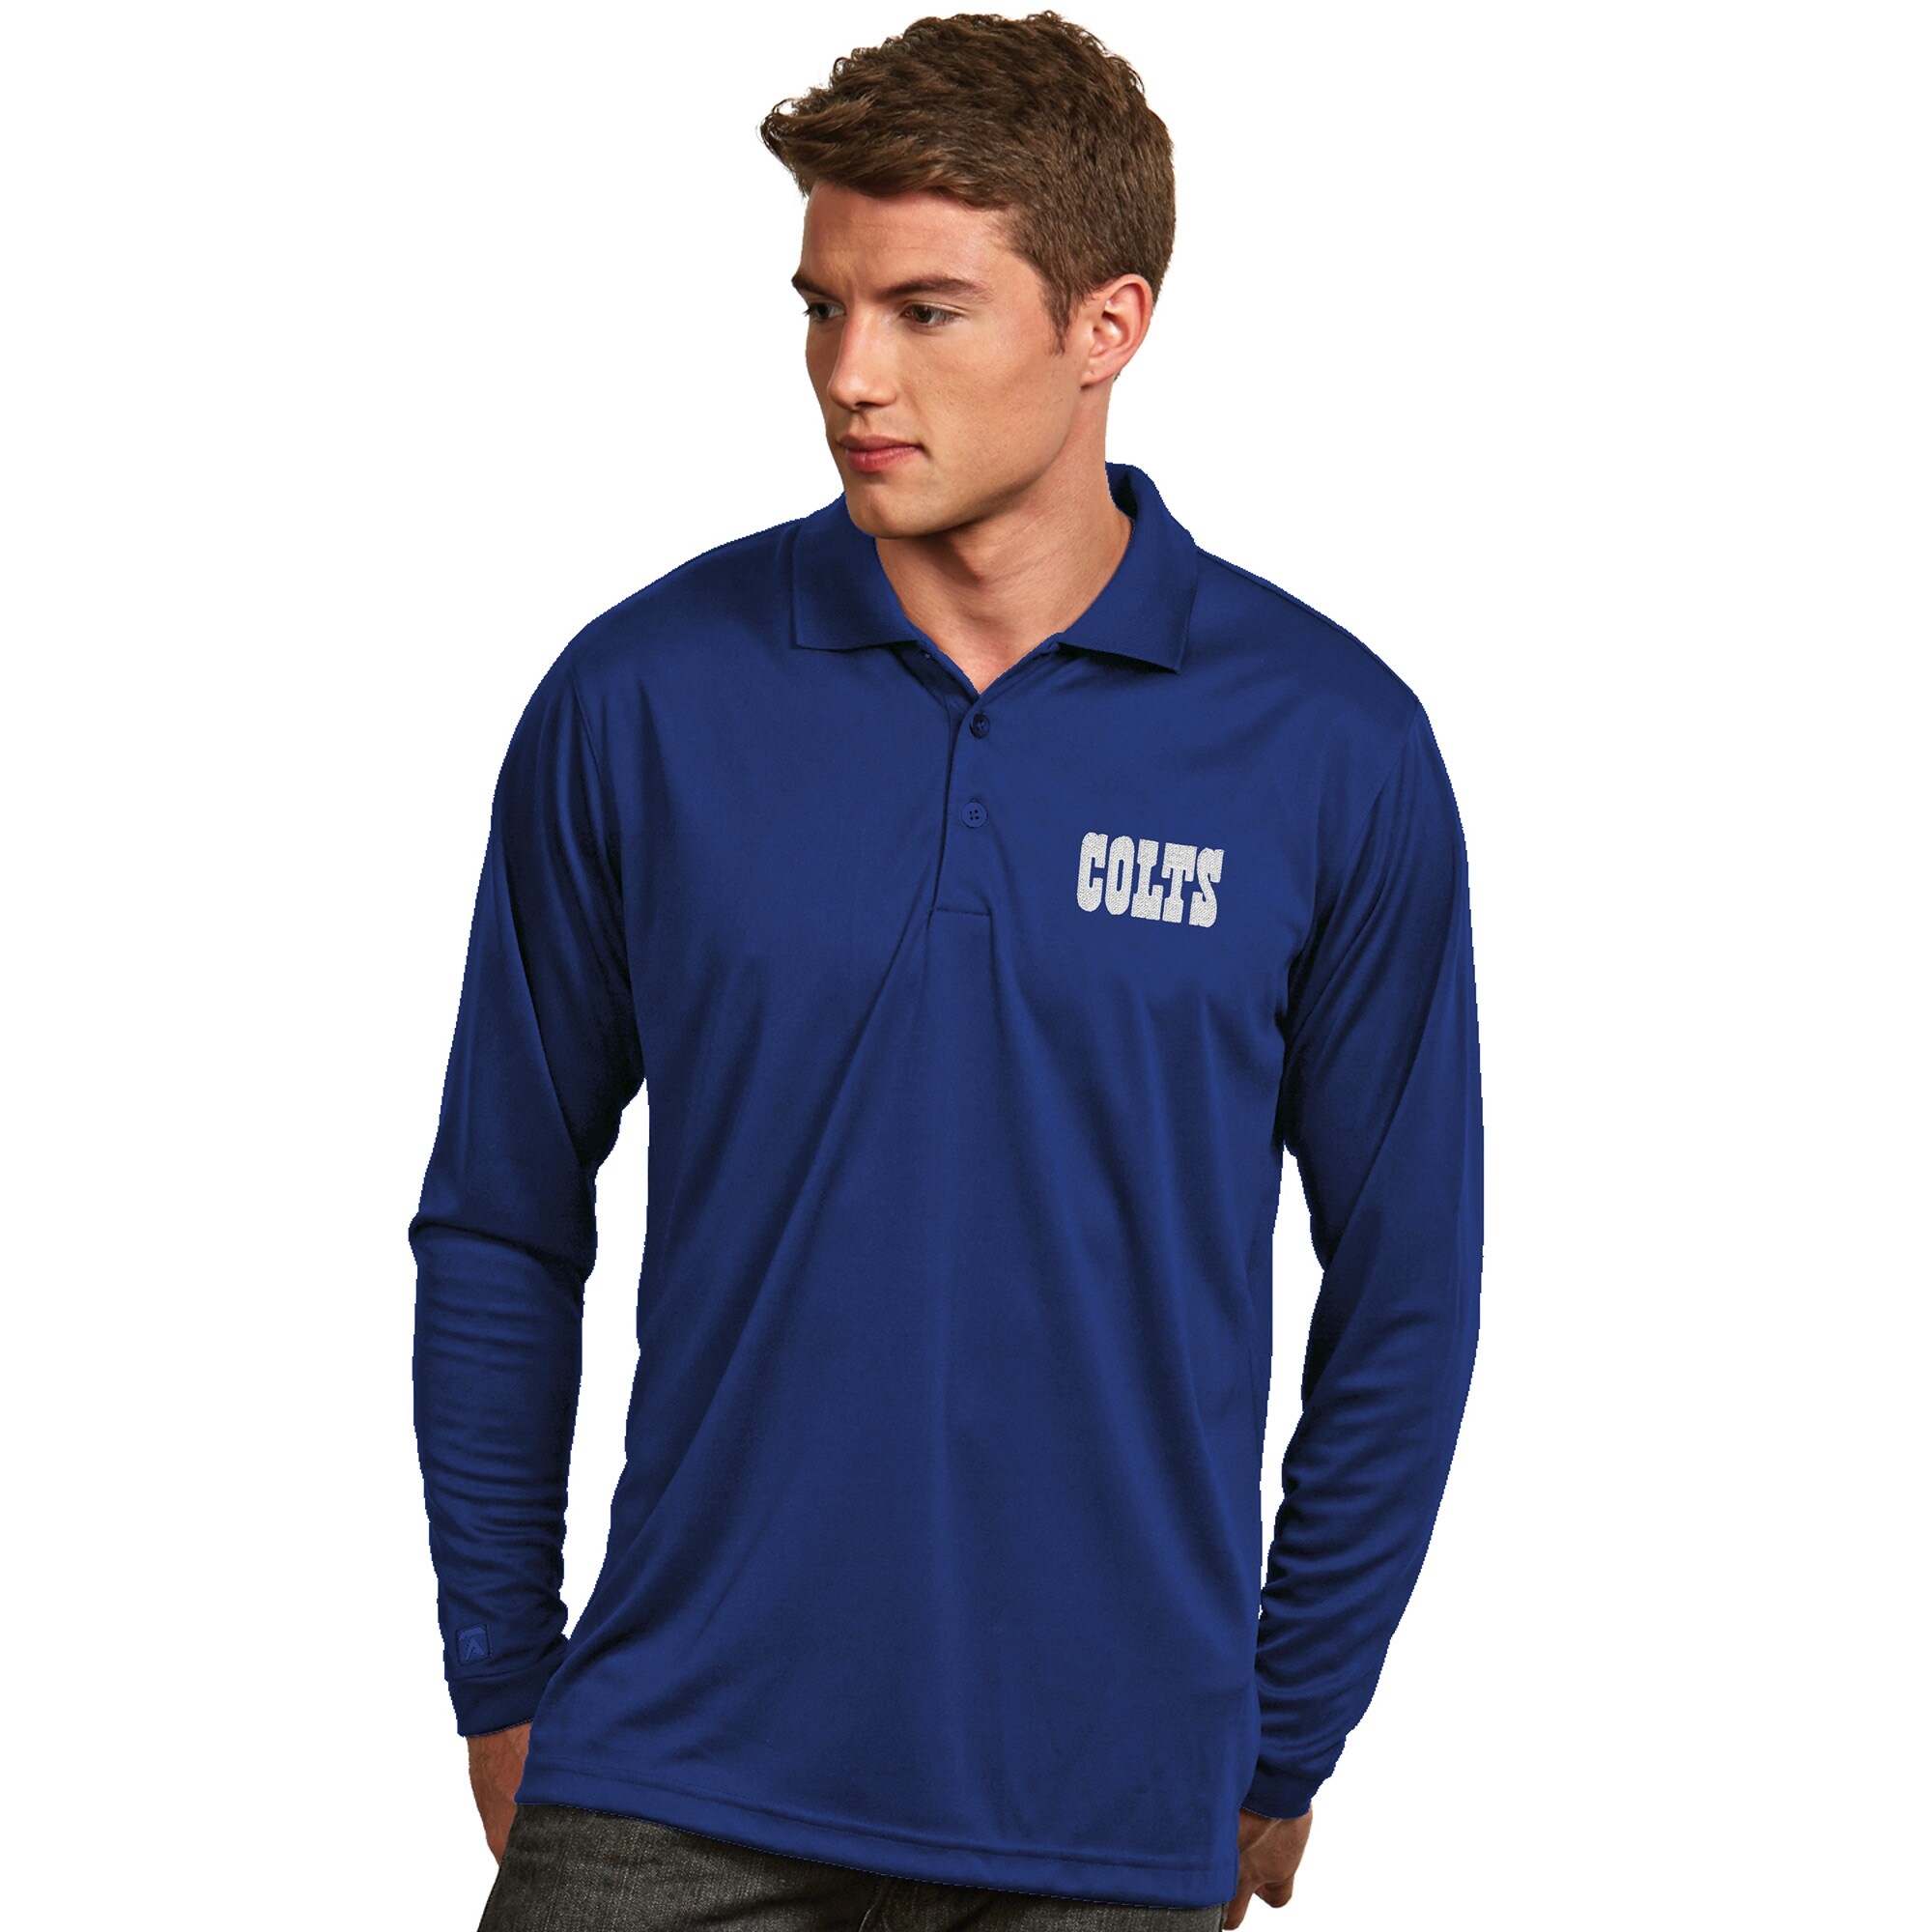 Indianapolis Colts Antigua Exceed Desert Dry X-tra Lite Long Sleeve Polo - Royal